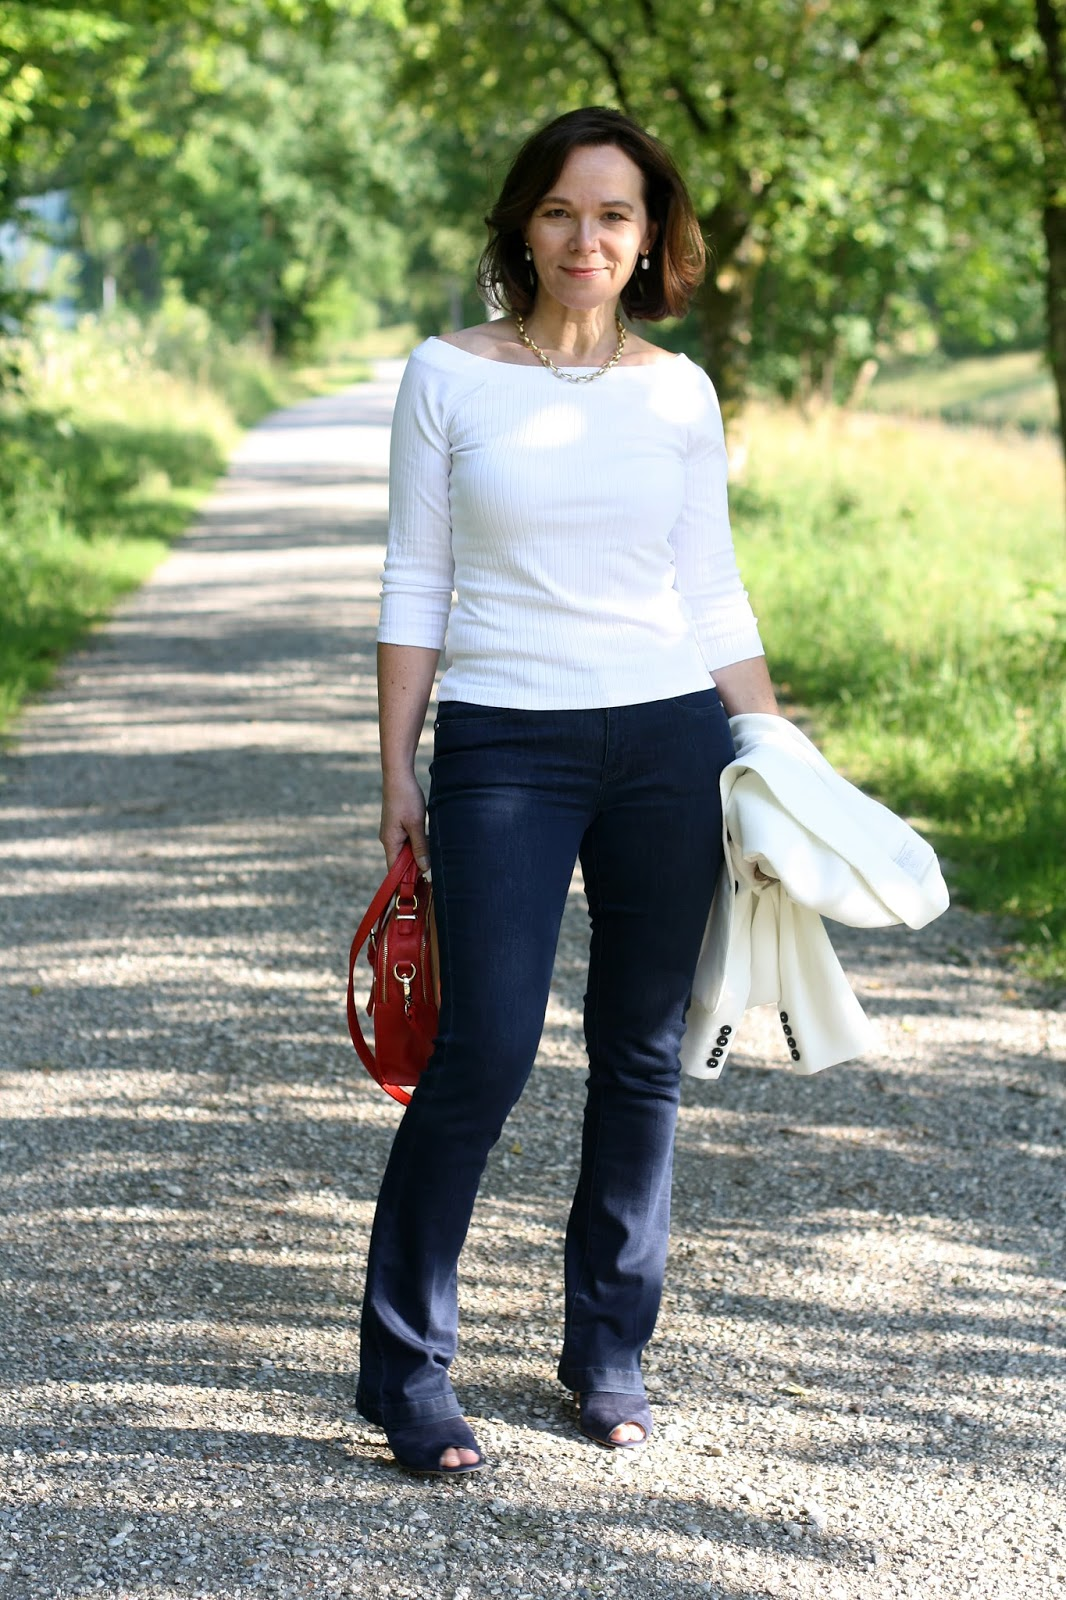 The Marks and Spencer white top challange